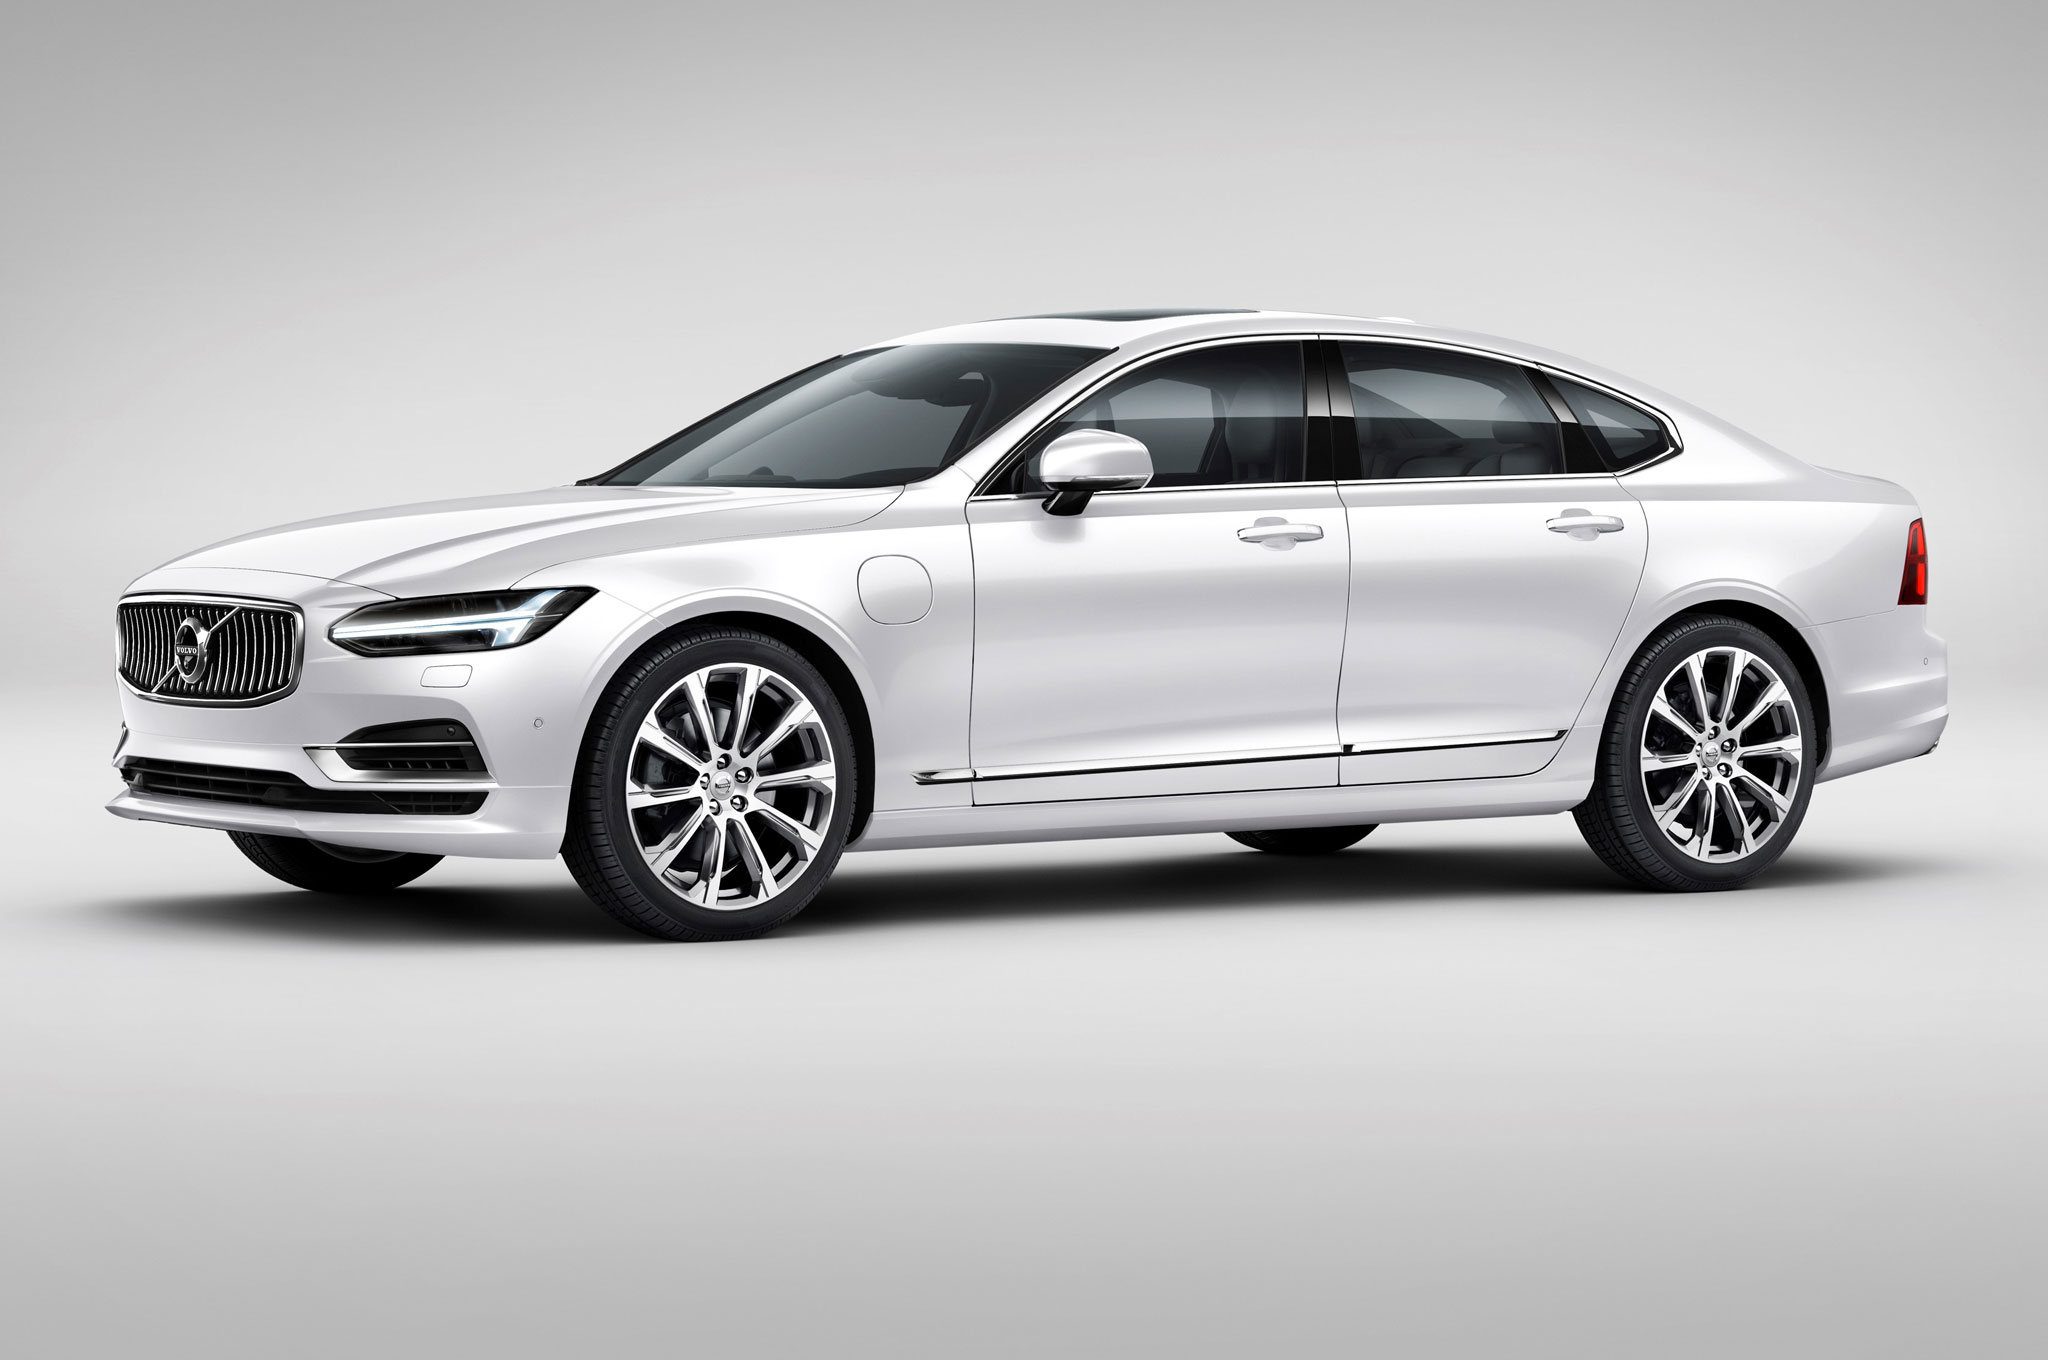 2017 volvo s90 priced from 47 945 xc90 excellence from 105 895 automobile magazine. Black Bedroom Furniture Sets. Home Design Ideas